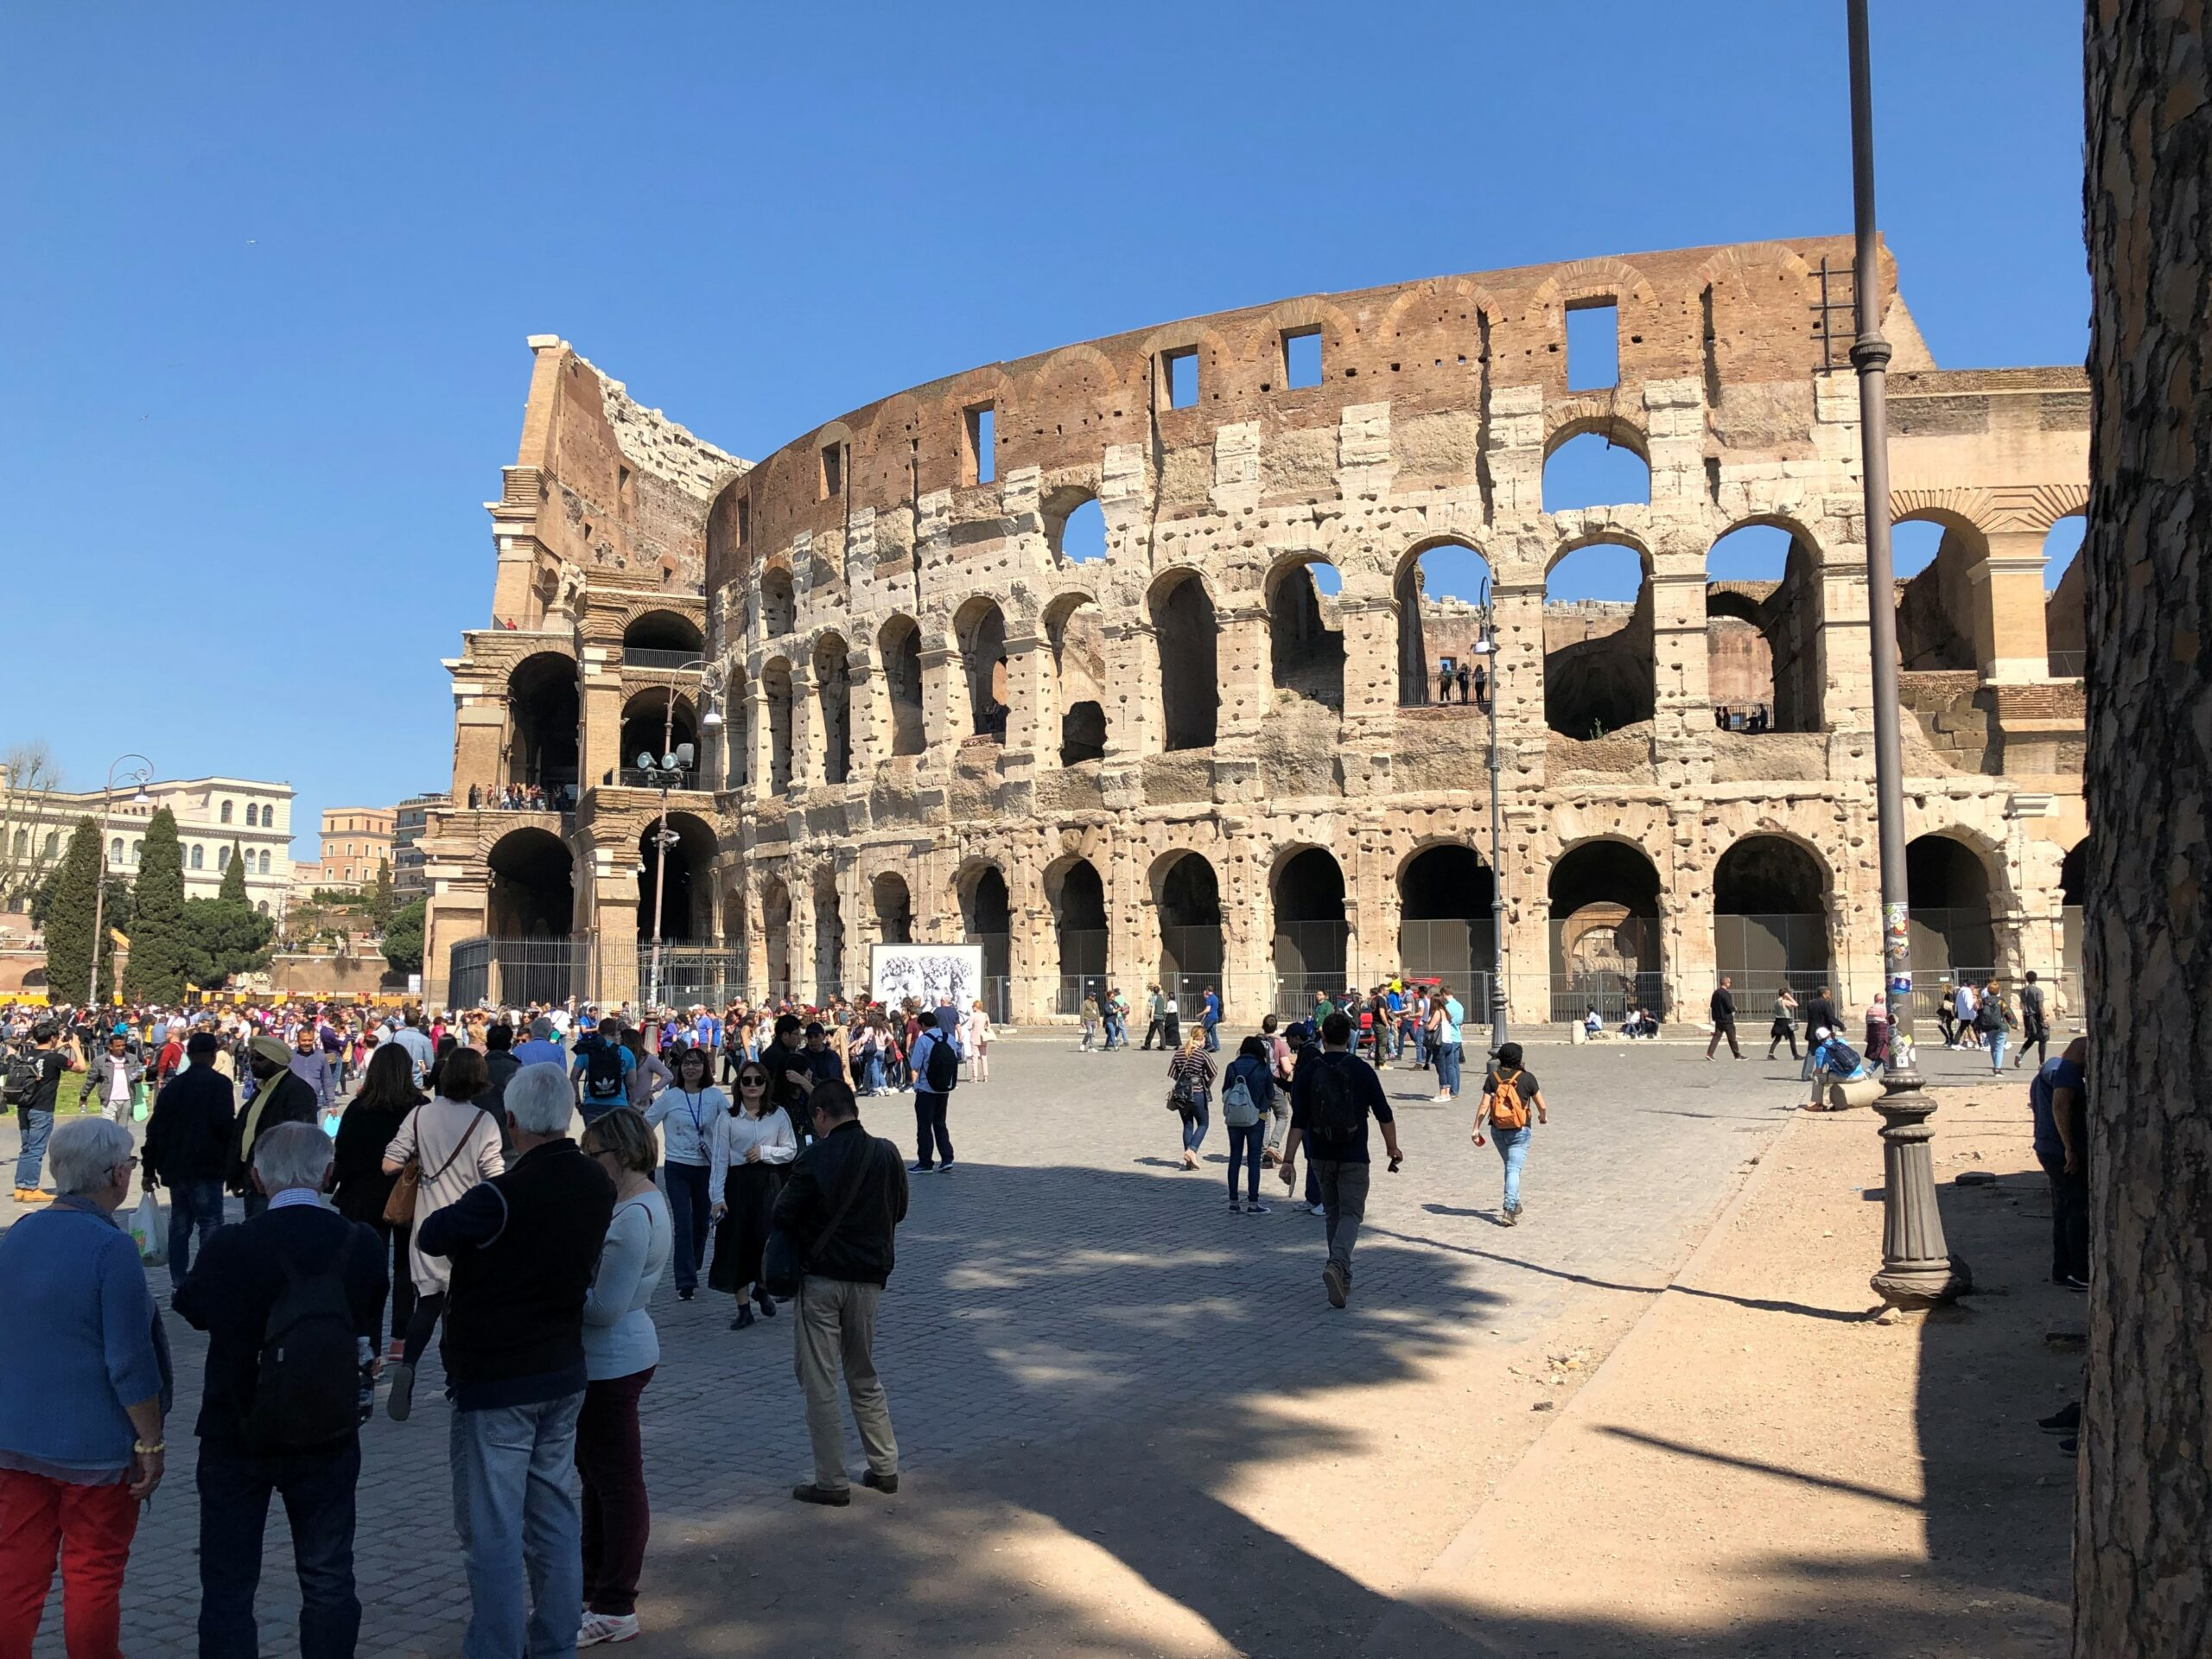 Overtoerisme in Rome - Colosseum